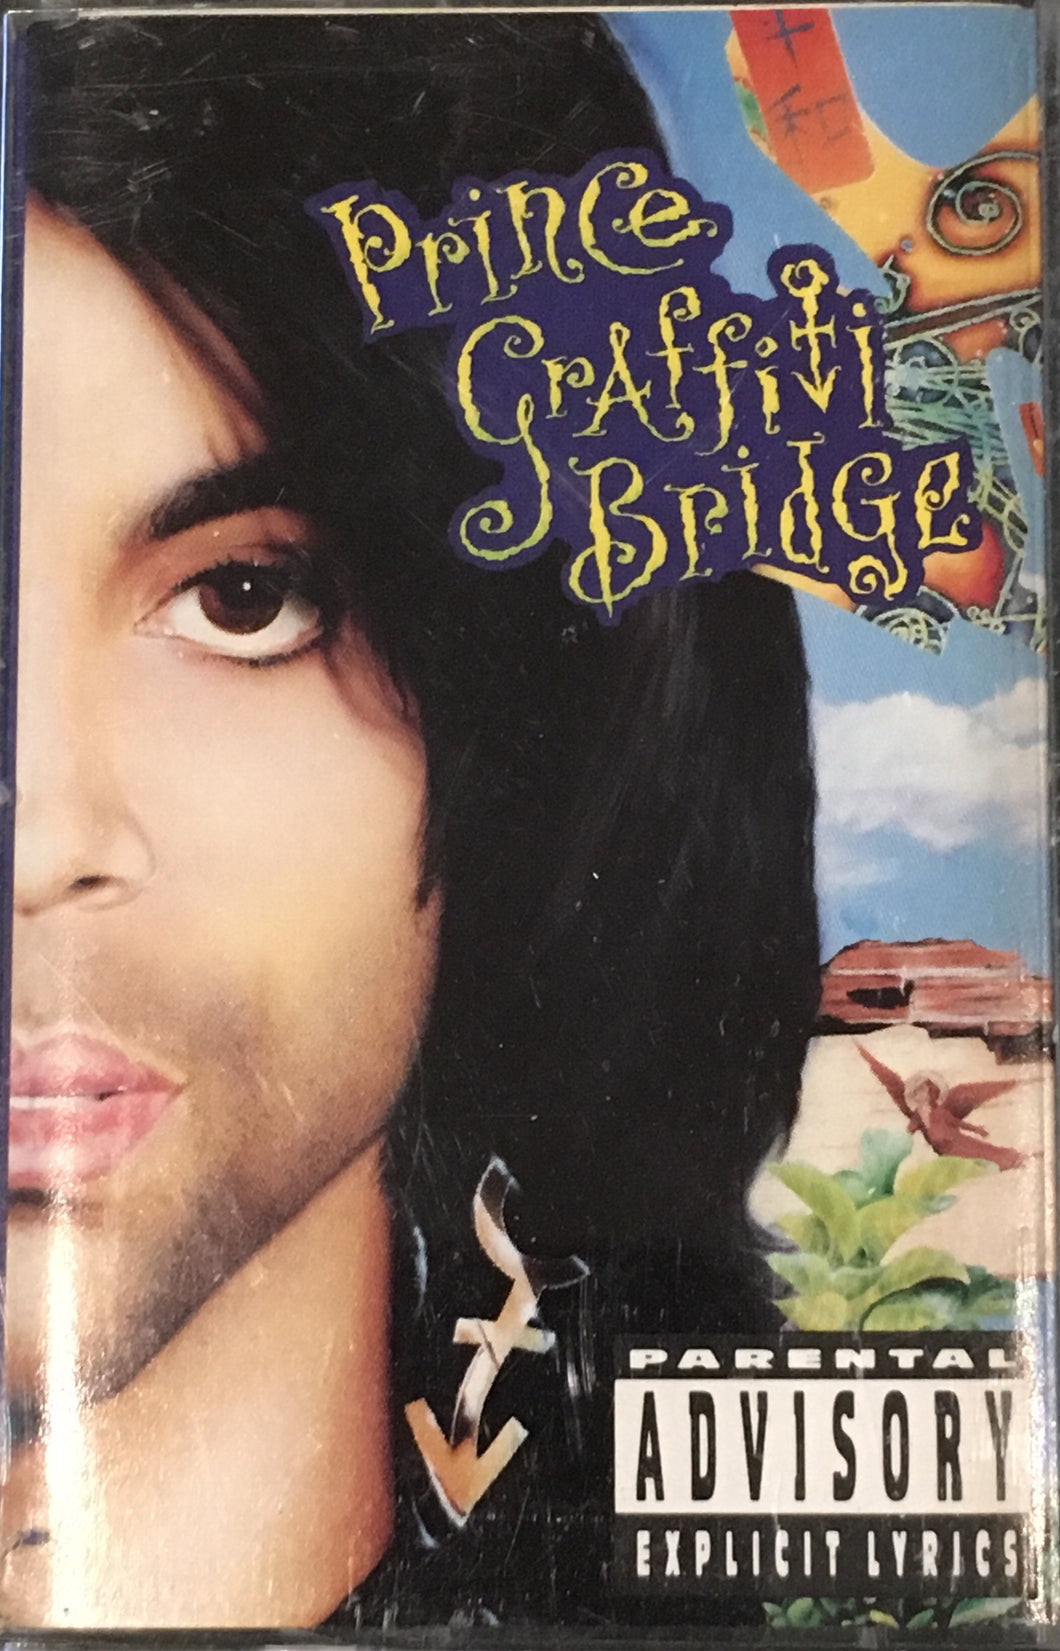 Prince Graffiti Bridge Cassette